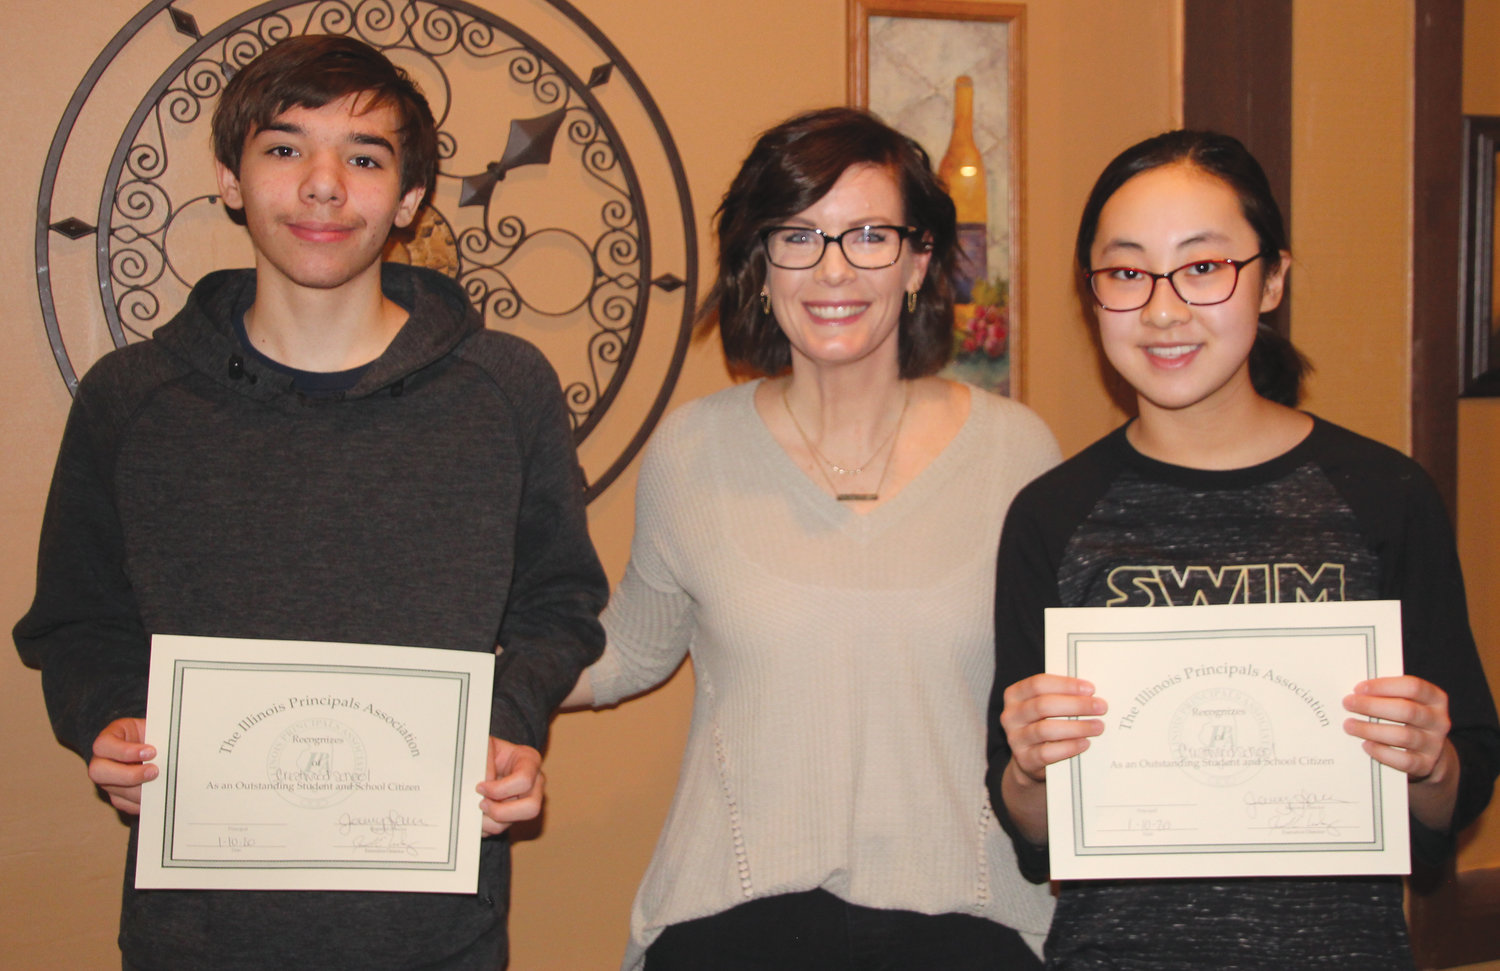 Two Crestwood students were honored at the Edgar County Principal's Breakfast Friday, Jan. 10, at Tuscany Restaurant in Paris. Pictured, from left, are Wayde Morgan, Crestwod Dean of Students Meghan Damler and Annie Li.